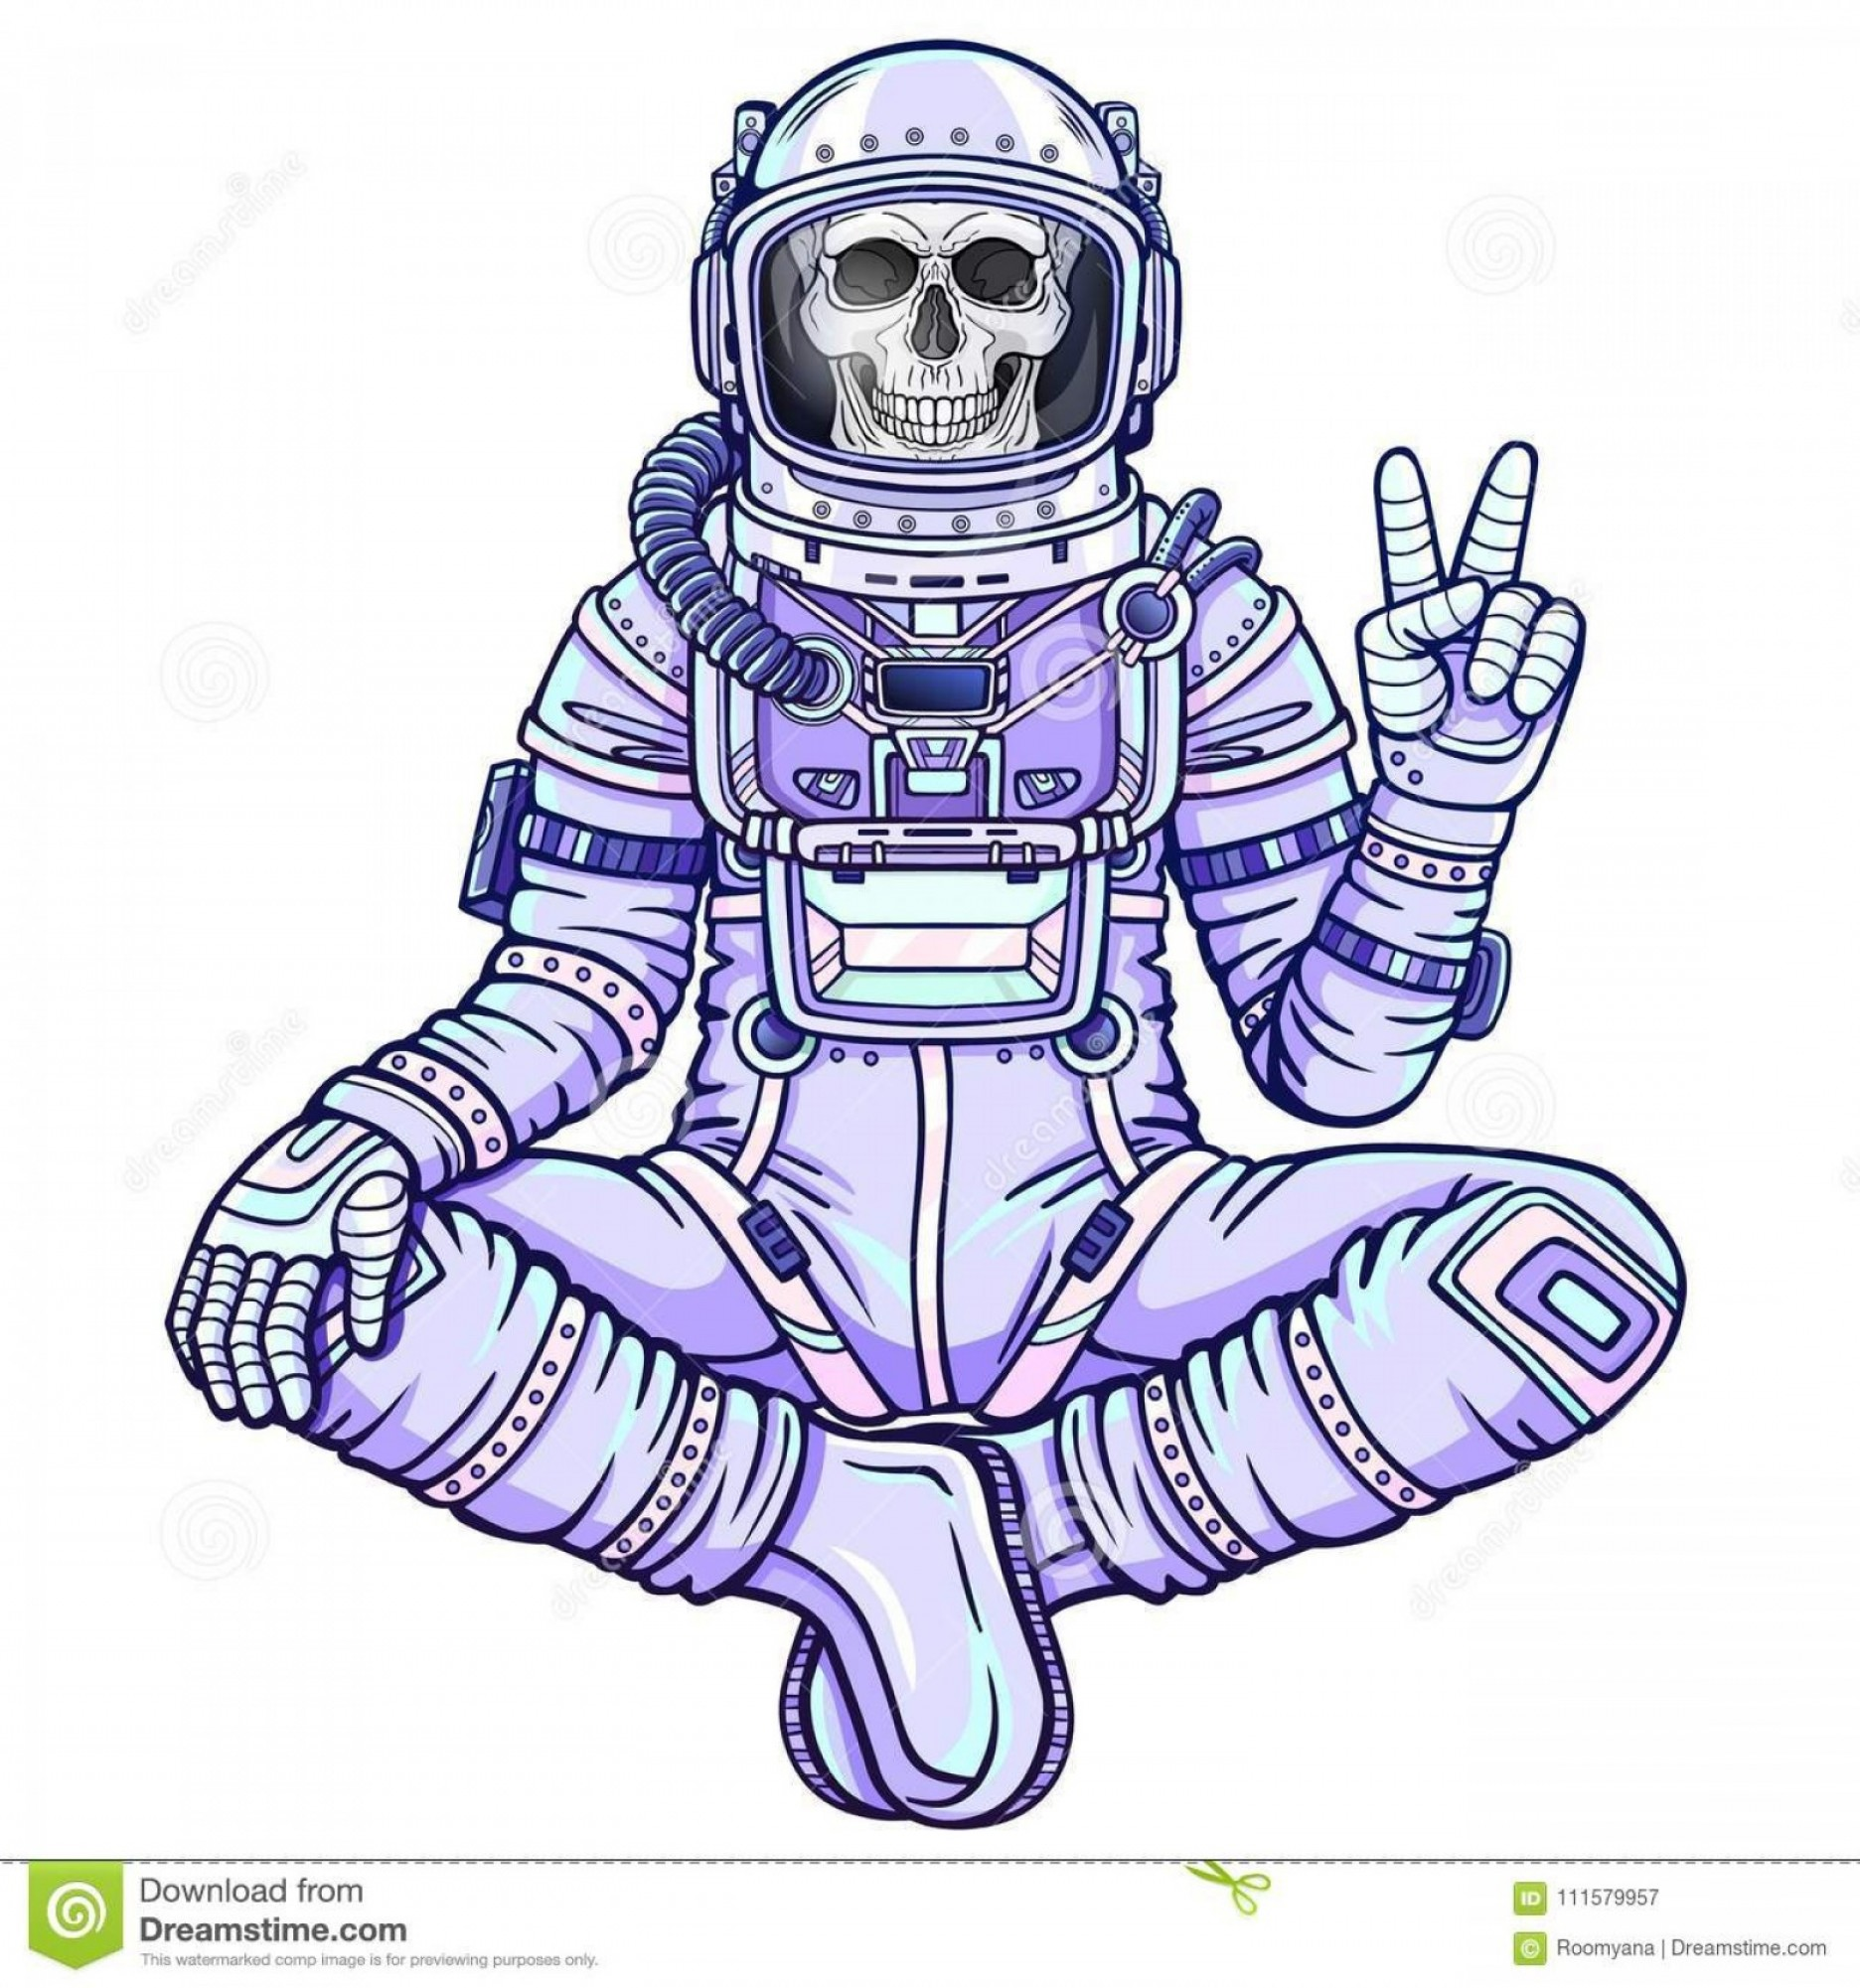 In Space Vector From Despicable Me: Animation Figure Astronaut Skeleton Sitting Buddha Pose Meditation Space Color Drawing Vector Illustration Isolated Image